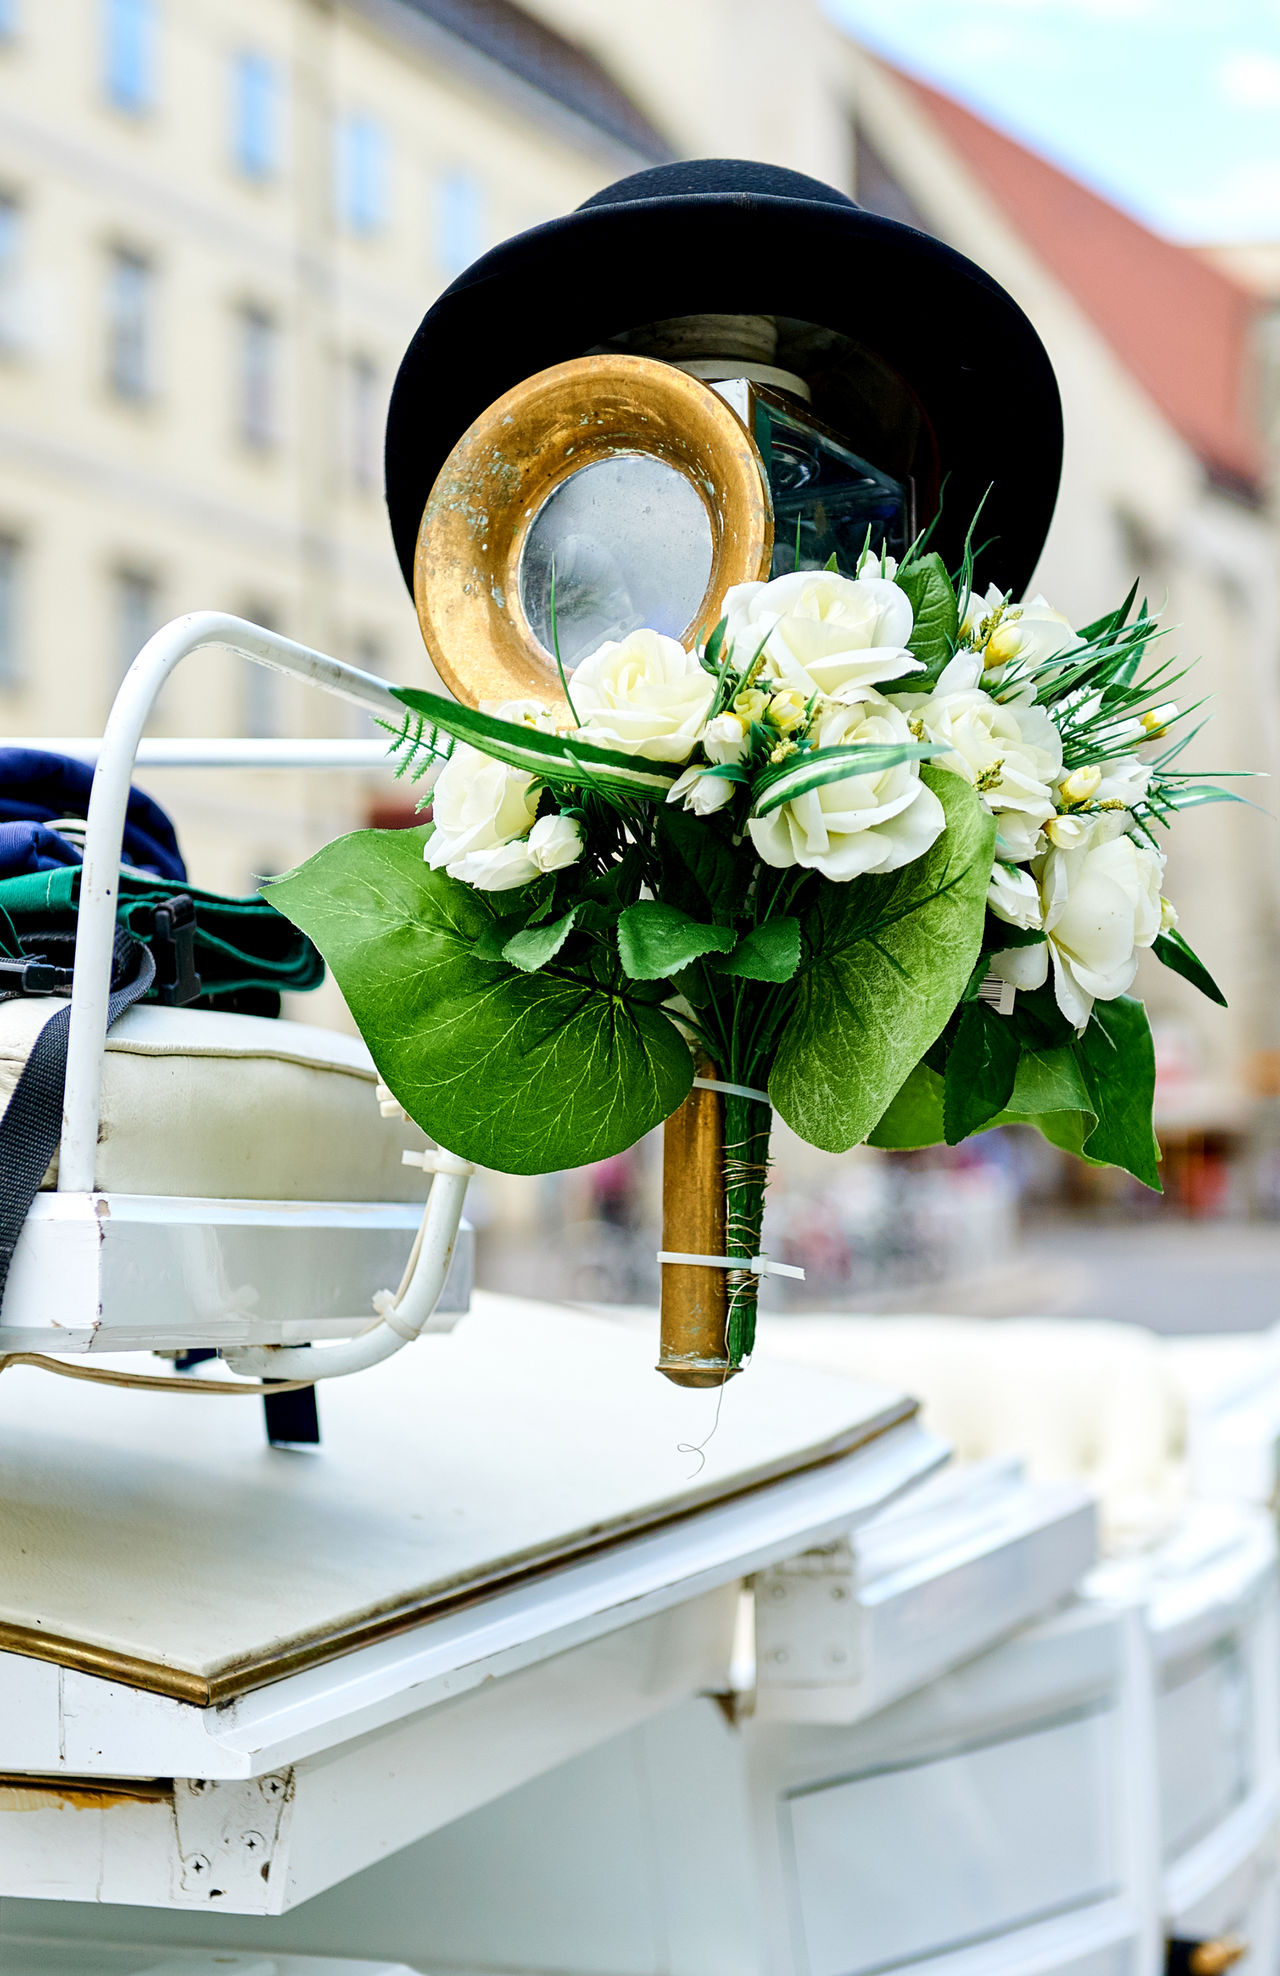 Element of a horse-drawn wedding carriage (Fiacre) in the old city of Vienna, Austria Austria Austrian Bouquet Cab Chariot Closeup Coach Detail Element Event Fiacre Fiaker Flower Holiday Horse-drawn Carriage Nobody Old Fashioned Outdoors Part Of Rentable Retro Styled Traditional Vienna Vintage Wedding